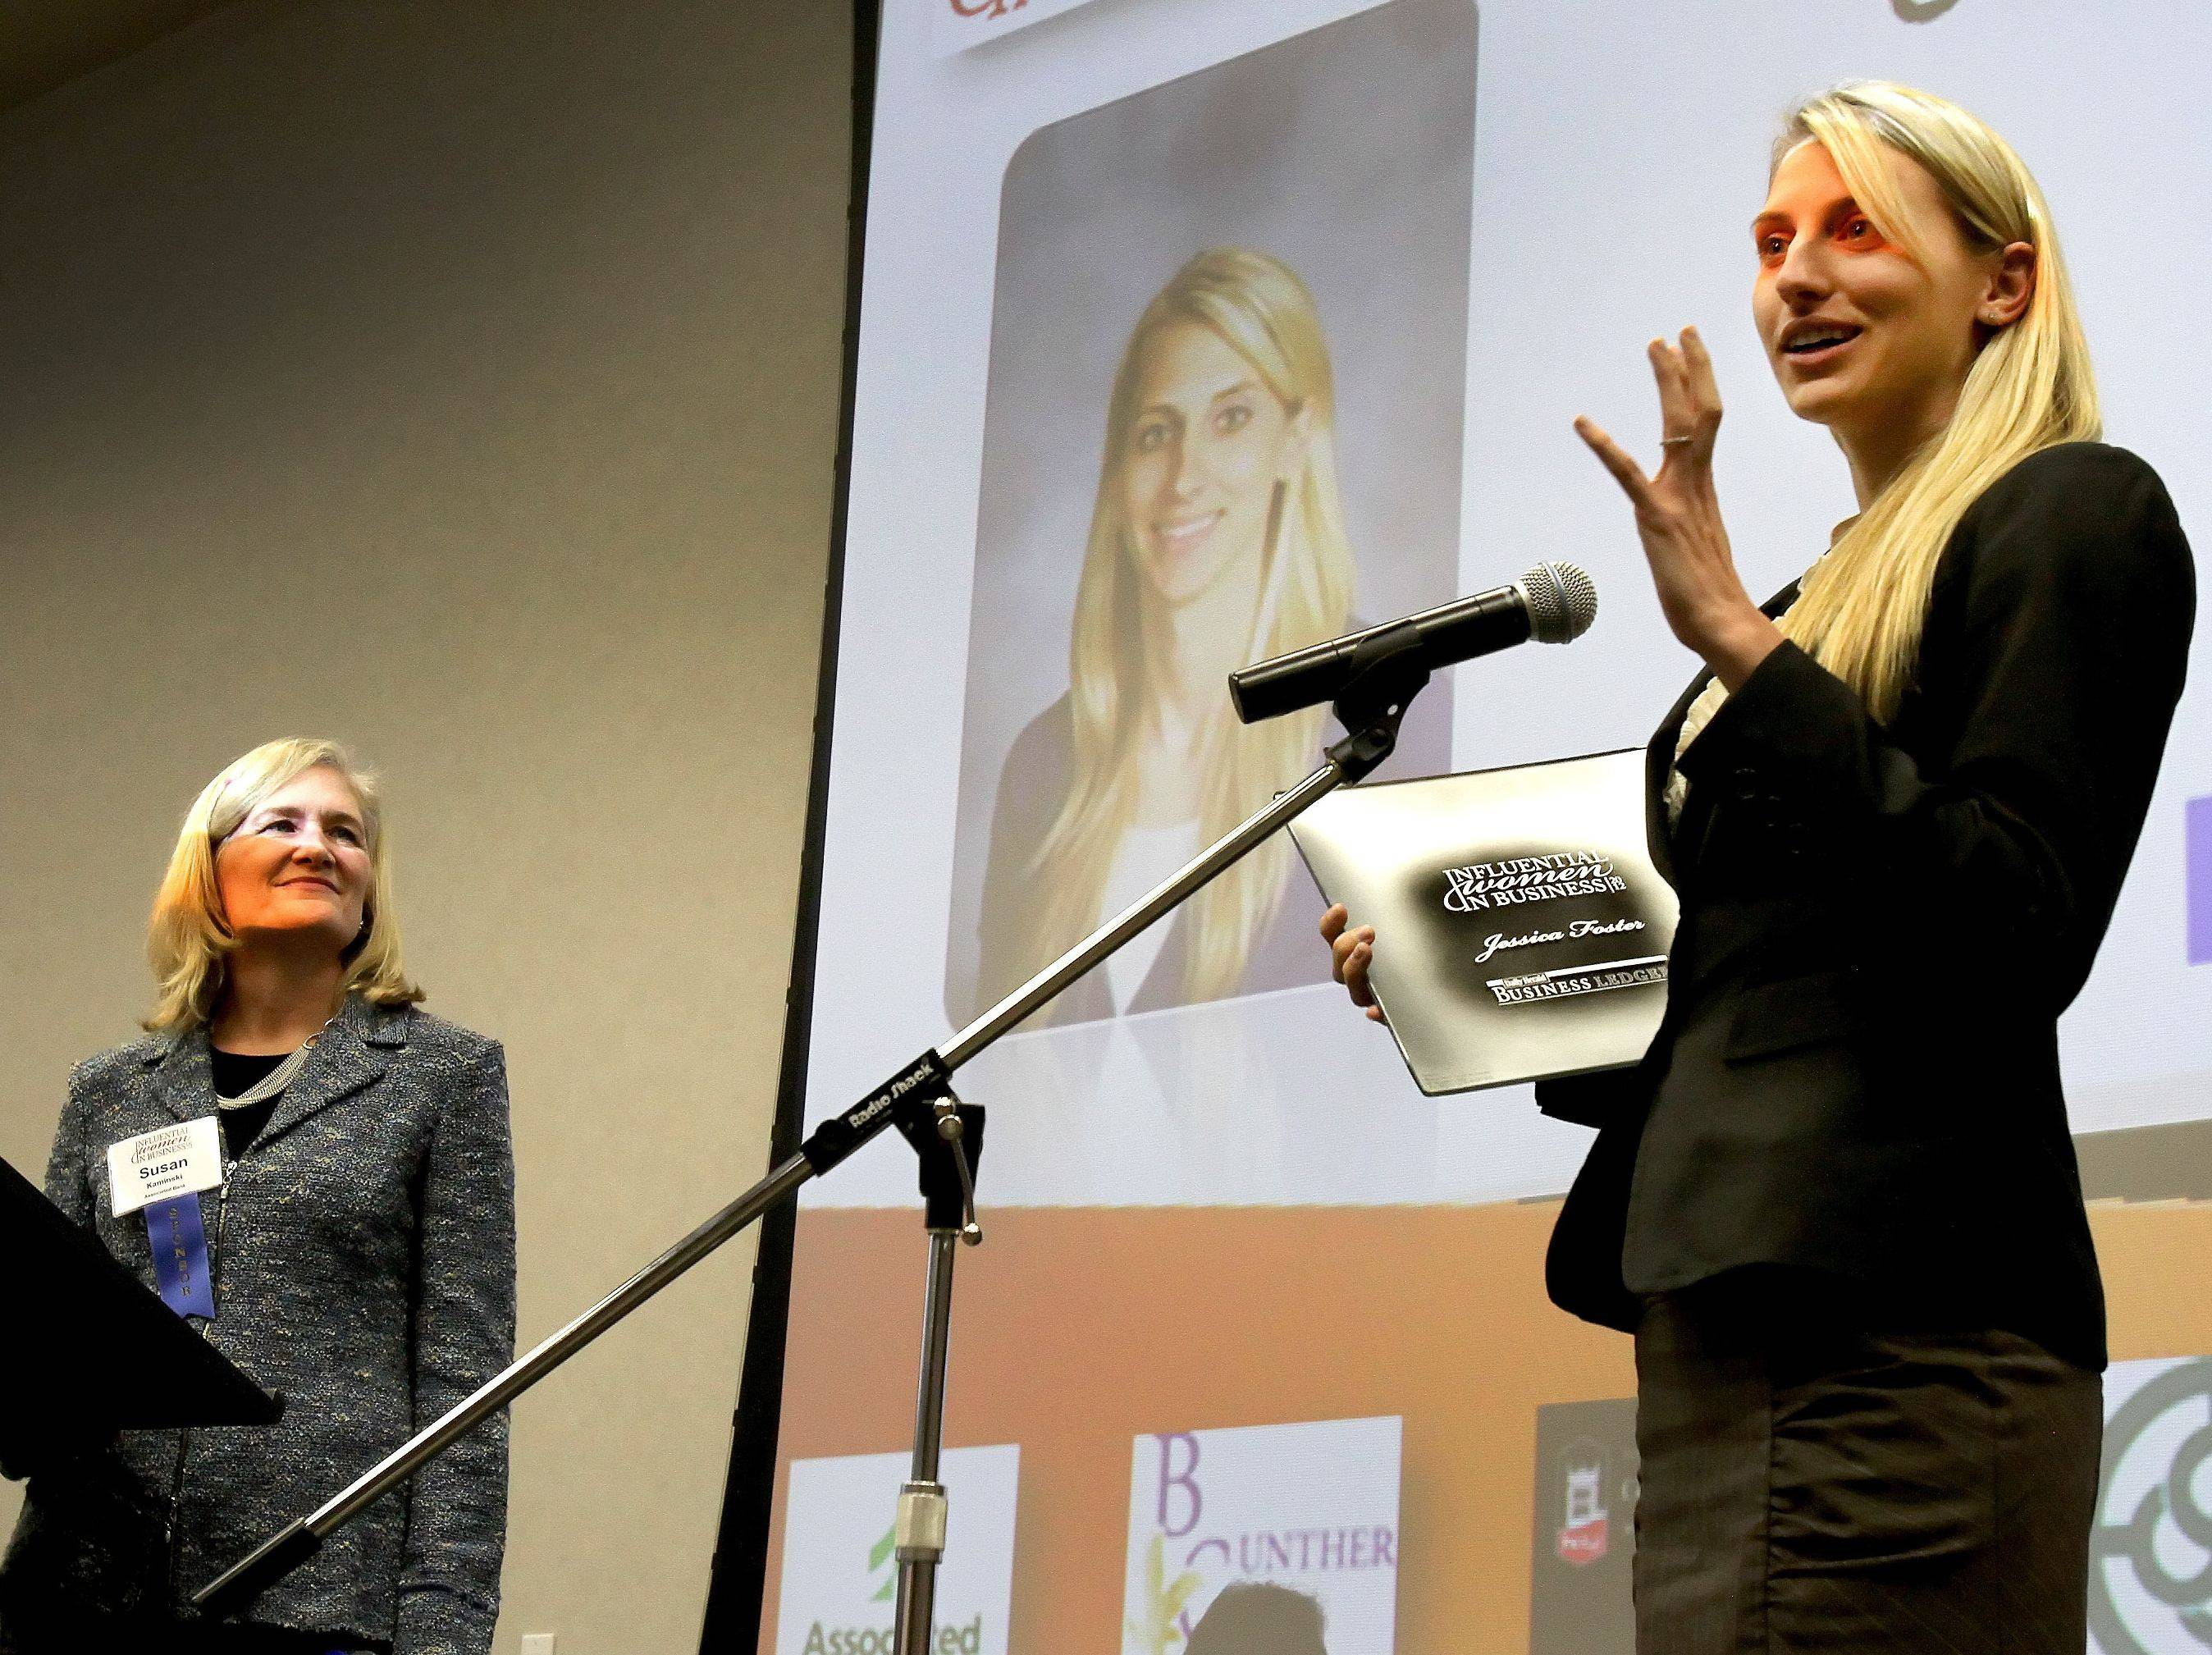 Jessica Foster, right, teacher at Lake Park High School, accepts her Influential Women in Business award at Northern Illinois University Naperville campus on Monday as Susan Kaminski of Associated Bank looks on.